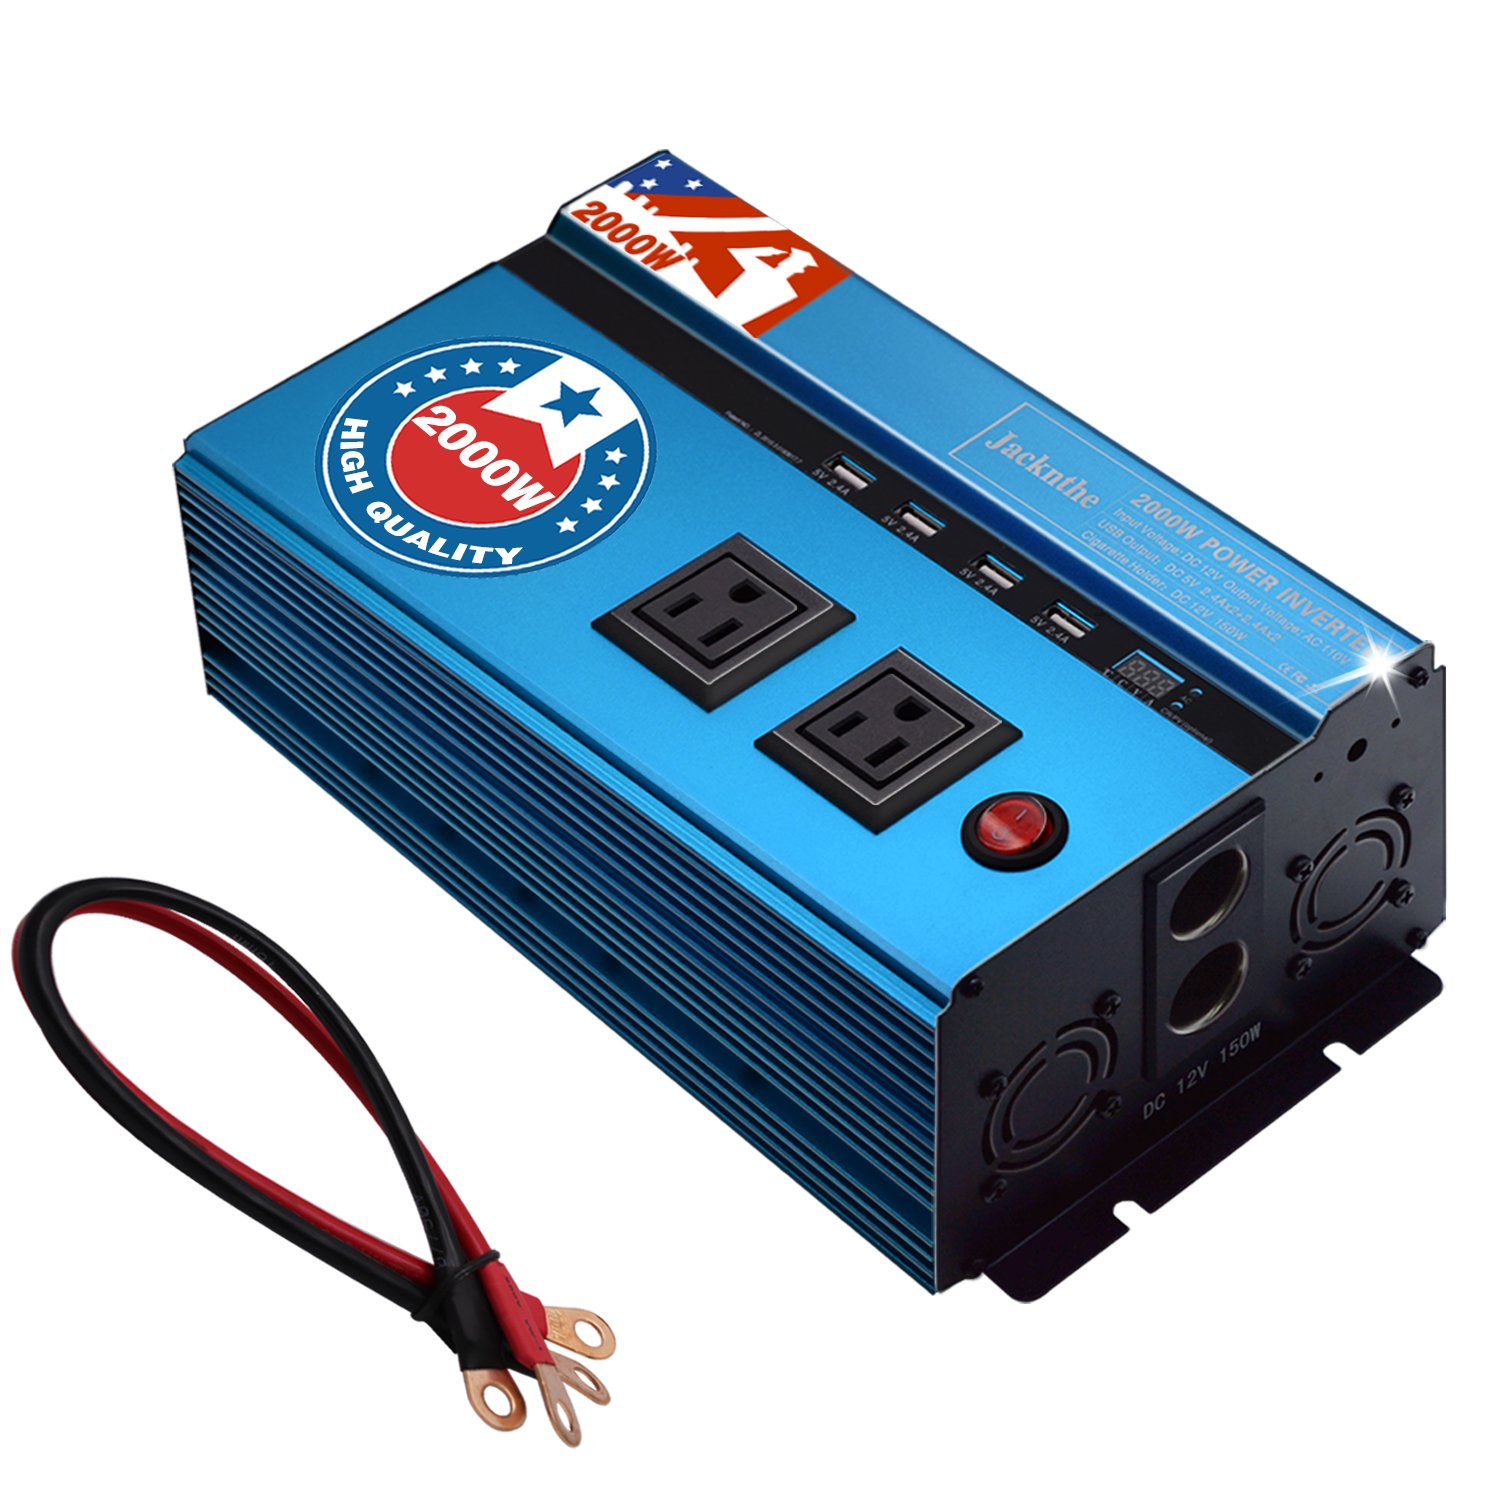 Jacknthe 2000W Power Inverter 12V DC to 110V AC Car Converter with 2 AC Outlets 4 USB Ports Vehicle Inverter with Dual Cigarette Lighter Socket and Digital Display